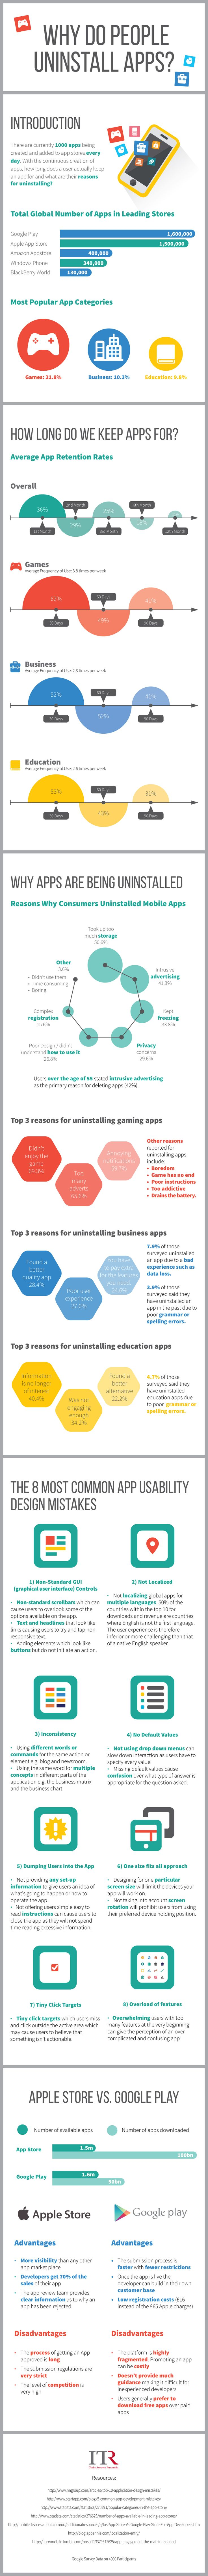 Whether you're a gaming, business or education app, there are very clear reasons why apps rarely last longer than a few months. Avoid making these development mistakes and you could transform your app from minor success into a textbook global business case study - #infographic